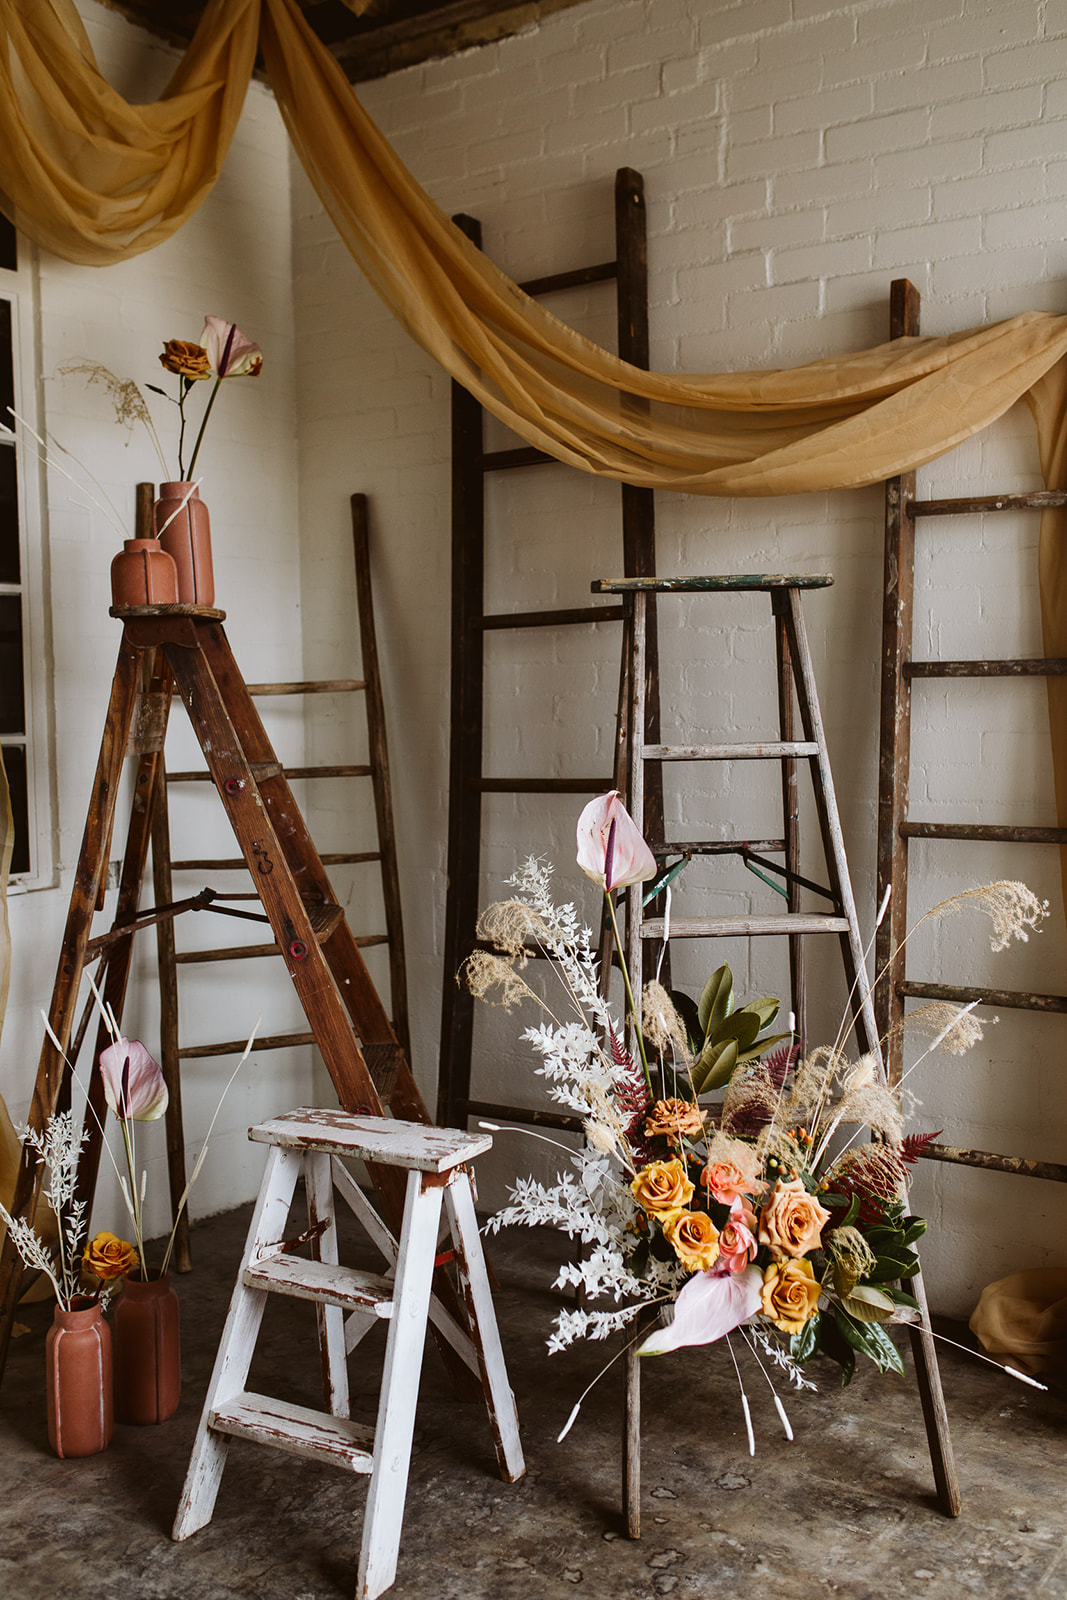 styled wedding shoot. wedding decor. ladder decor. boho wedding. eclectic wedding. unique decor. unique wedding decor. elopement decor. bright airy wedding. natural and wood accents. boho bouquet. beautiful details. vintage ladders. whimsical. whimsical bouquet.